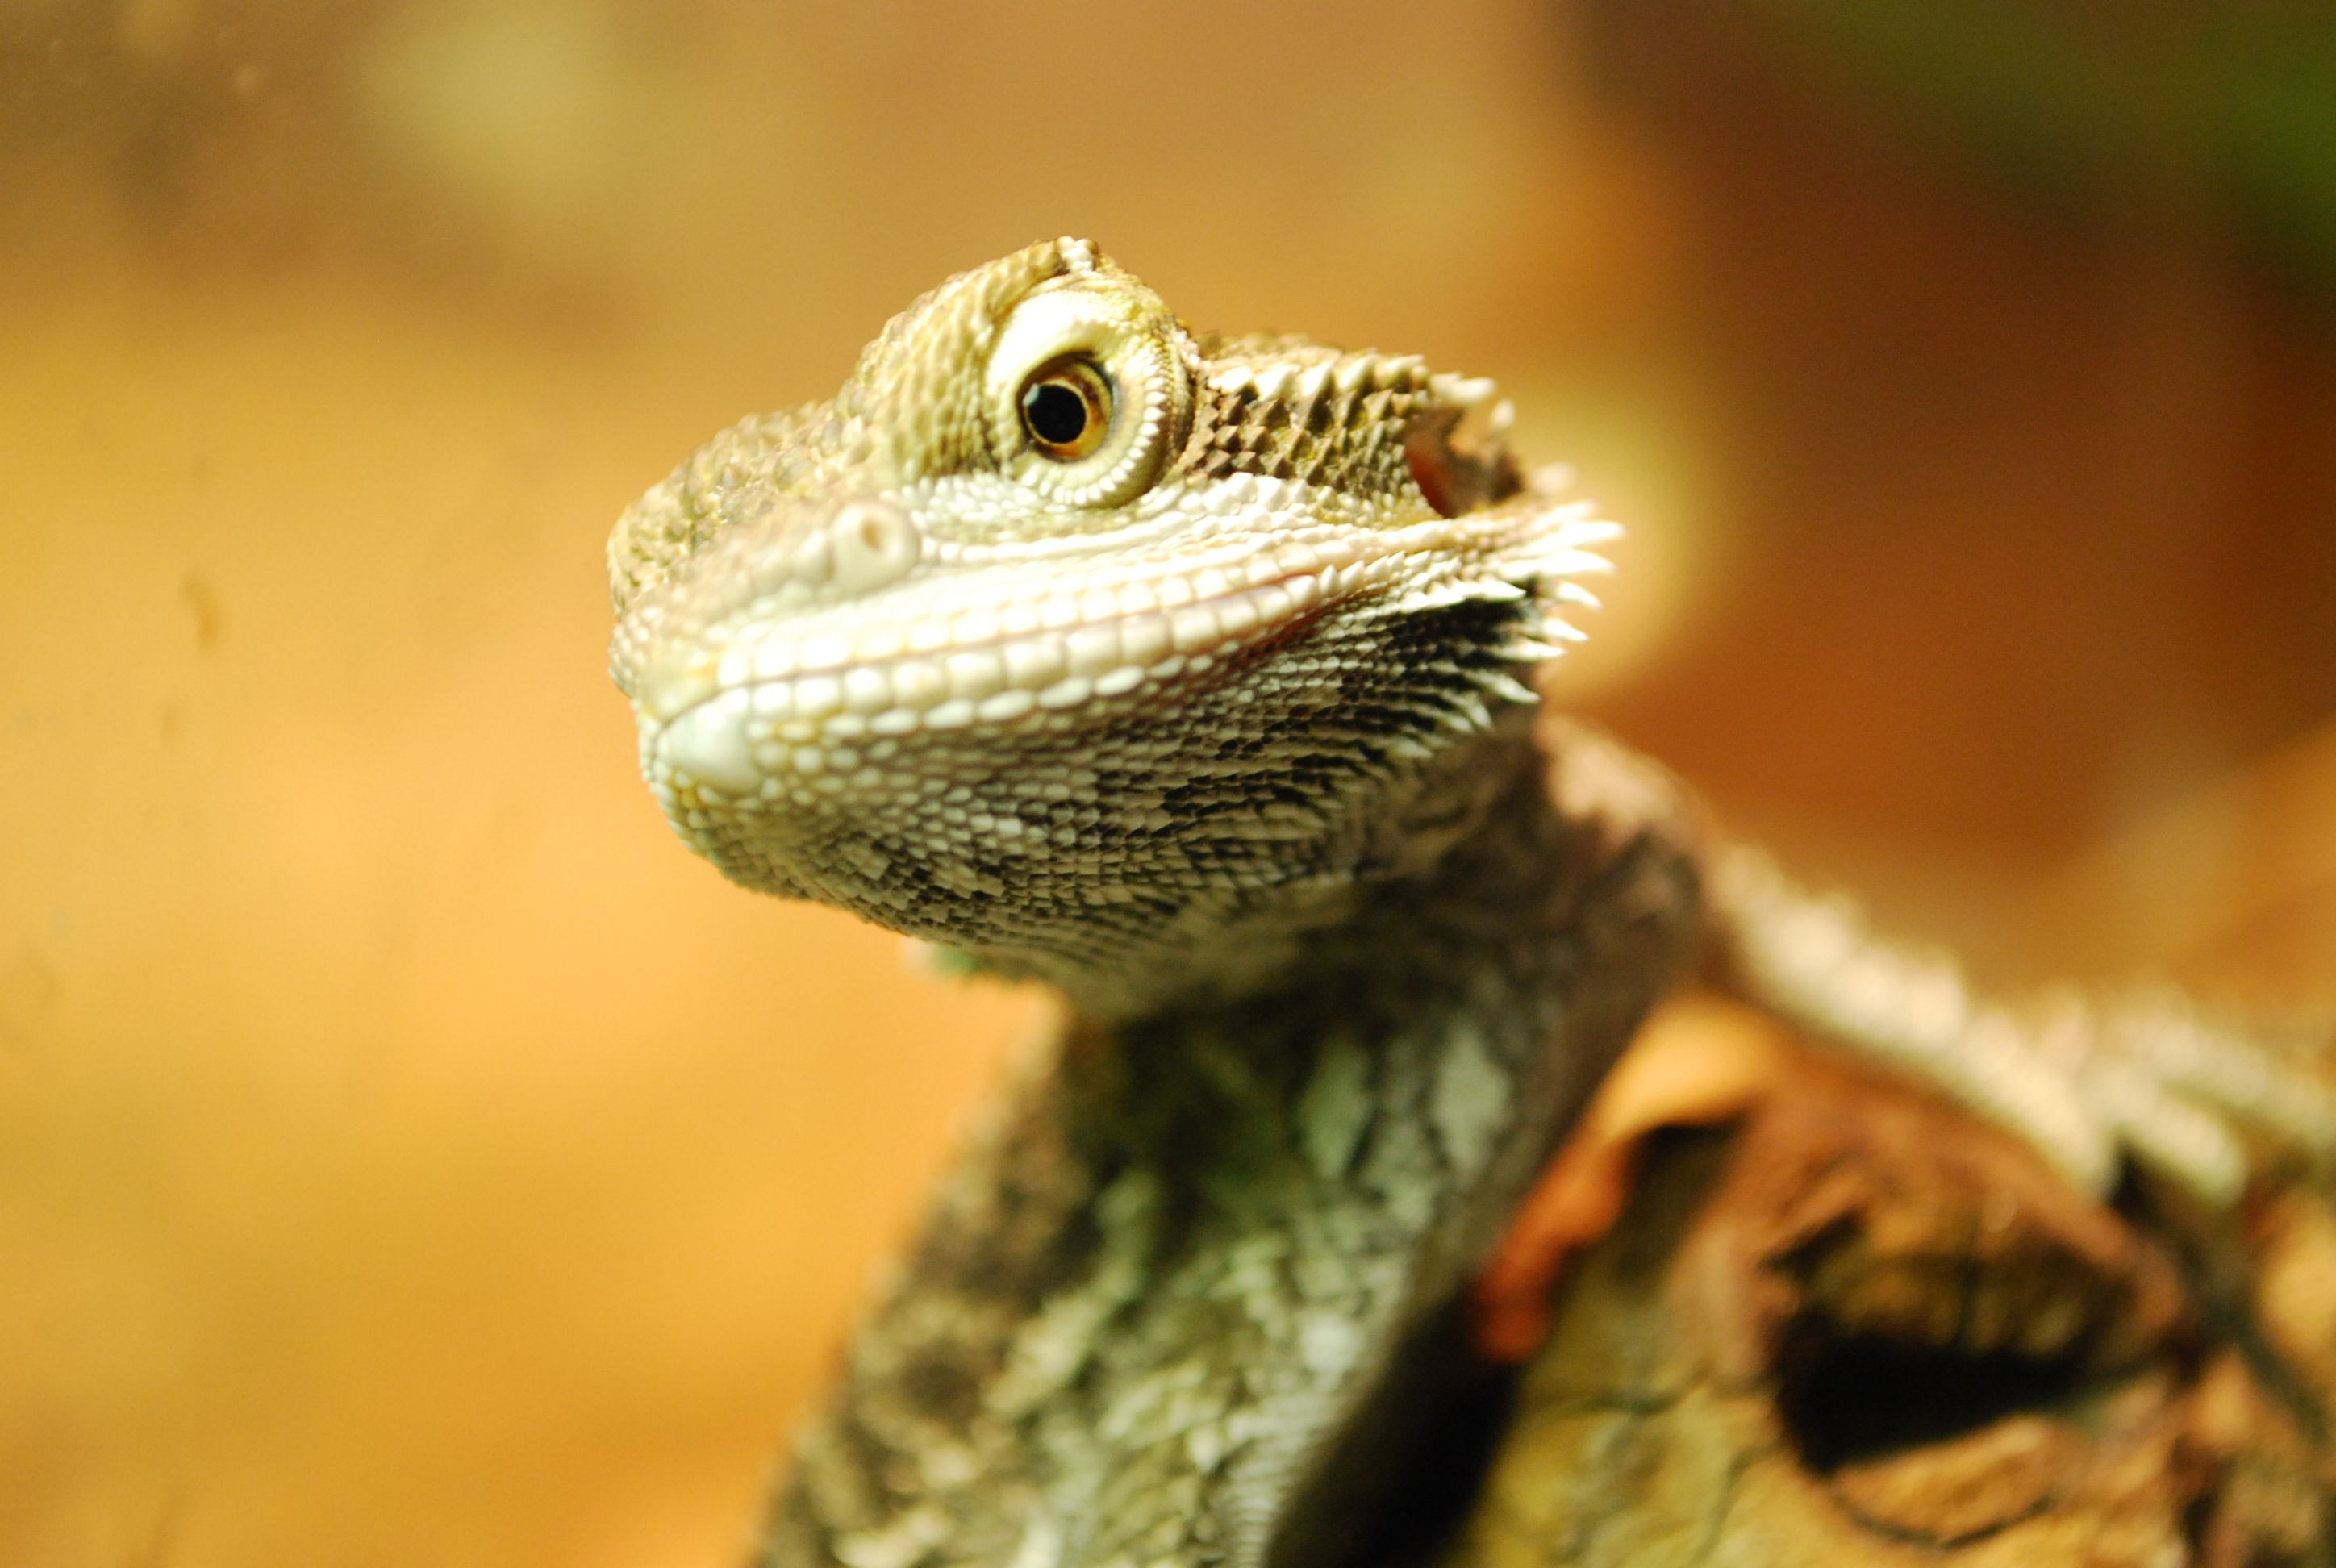 Bearded dragon wallpaper 2896x1944px wallpaper bearded dragon bearded dragon wallpaper 2896x1944px wallpaper bearded dragon voltagebd Choice Image